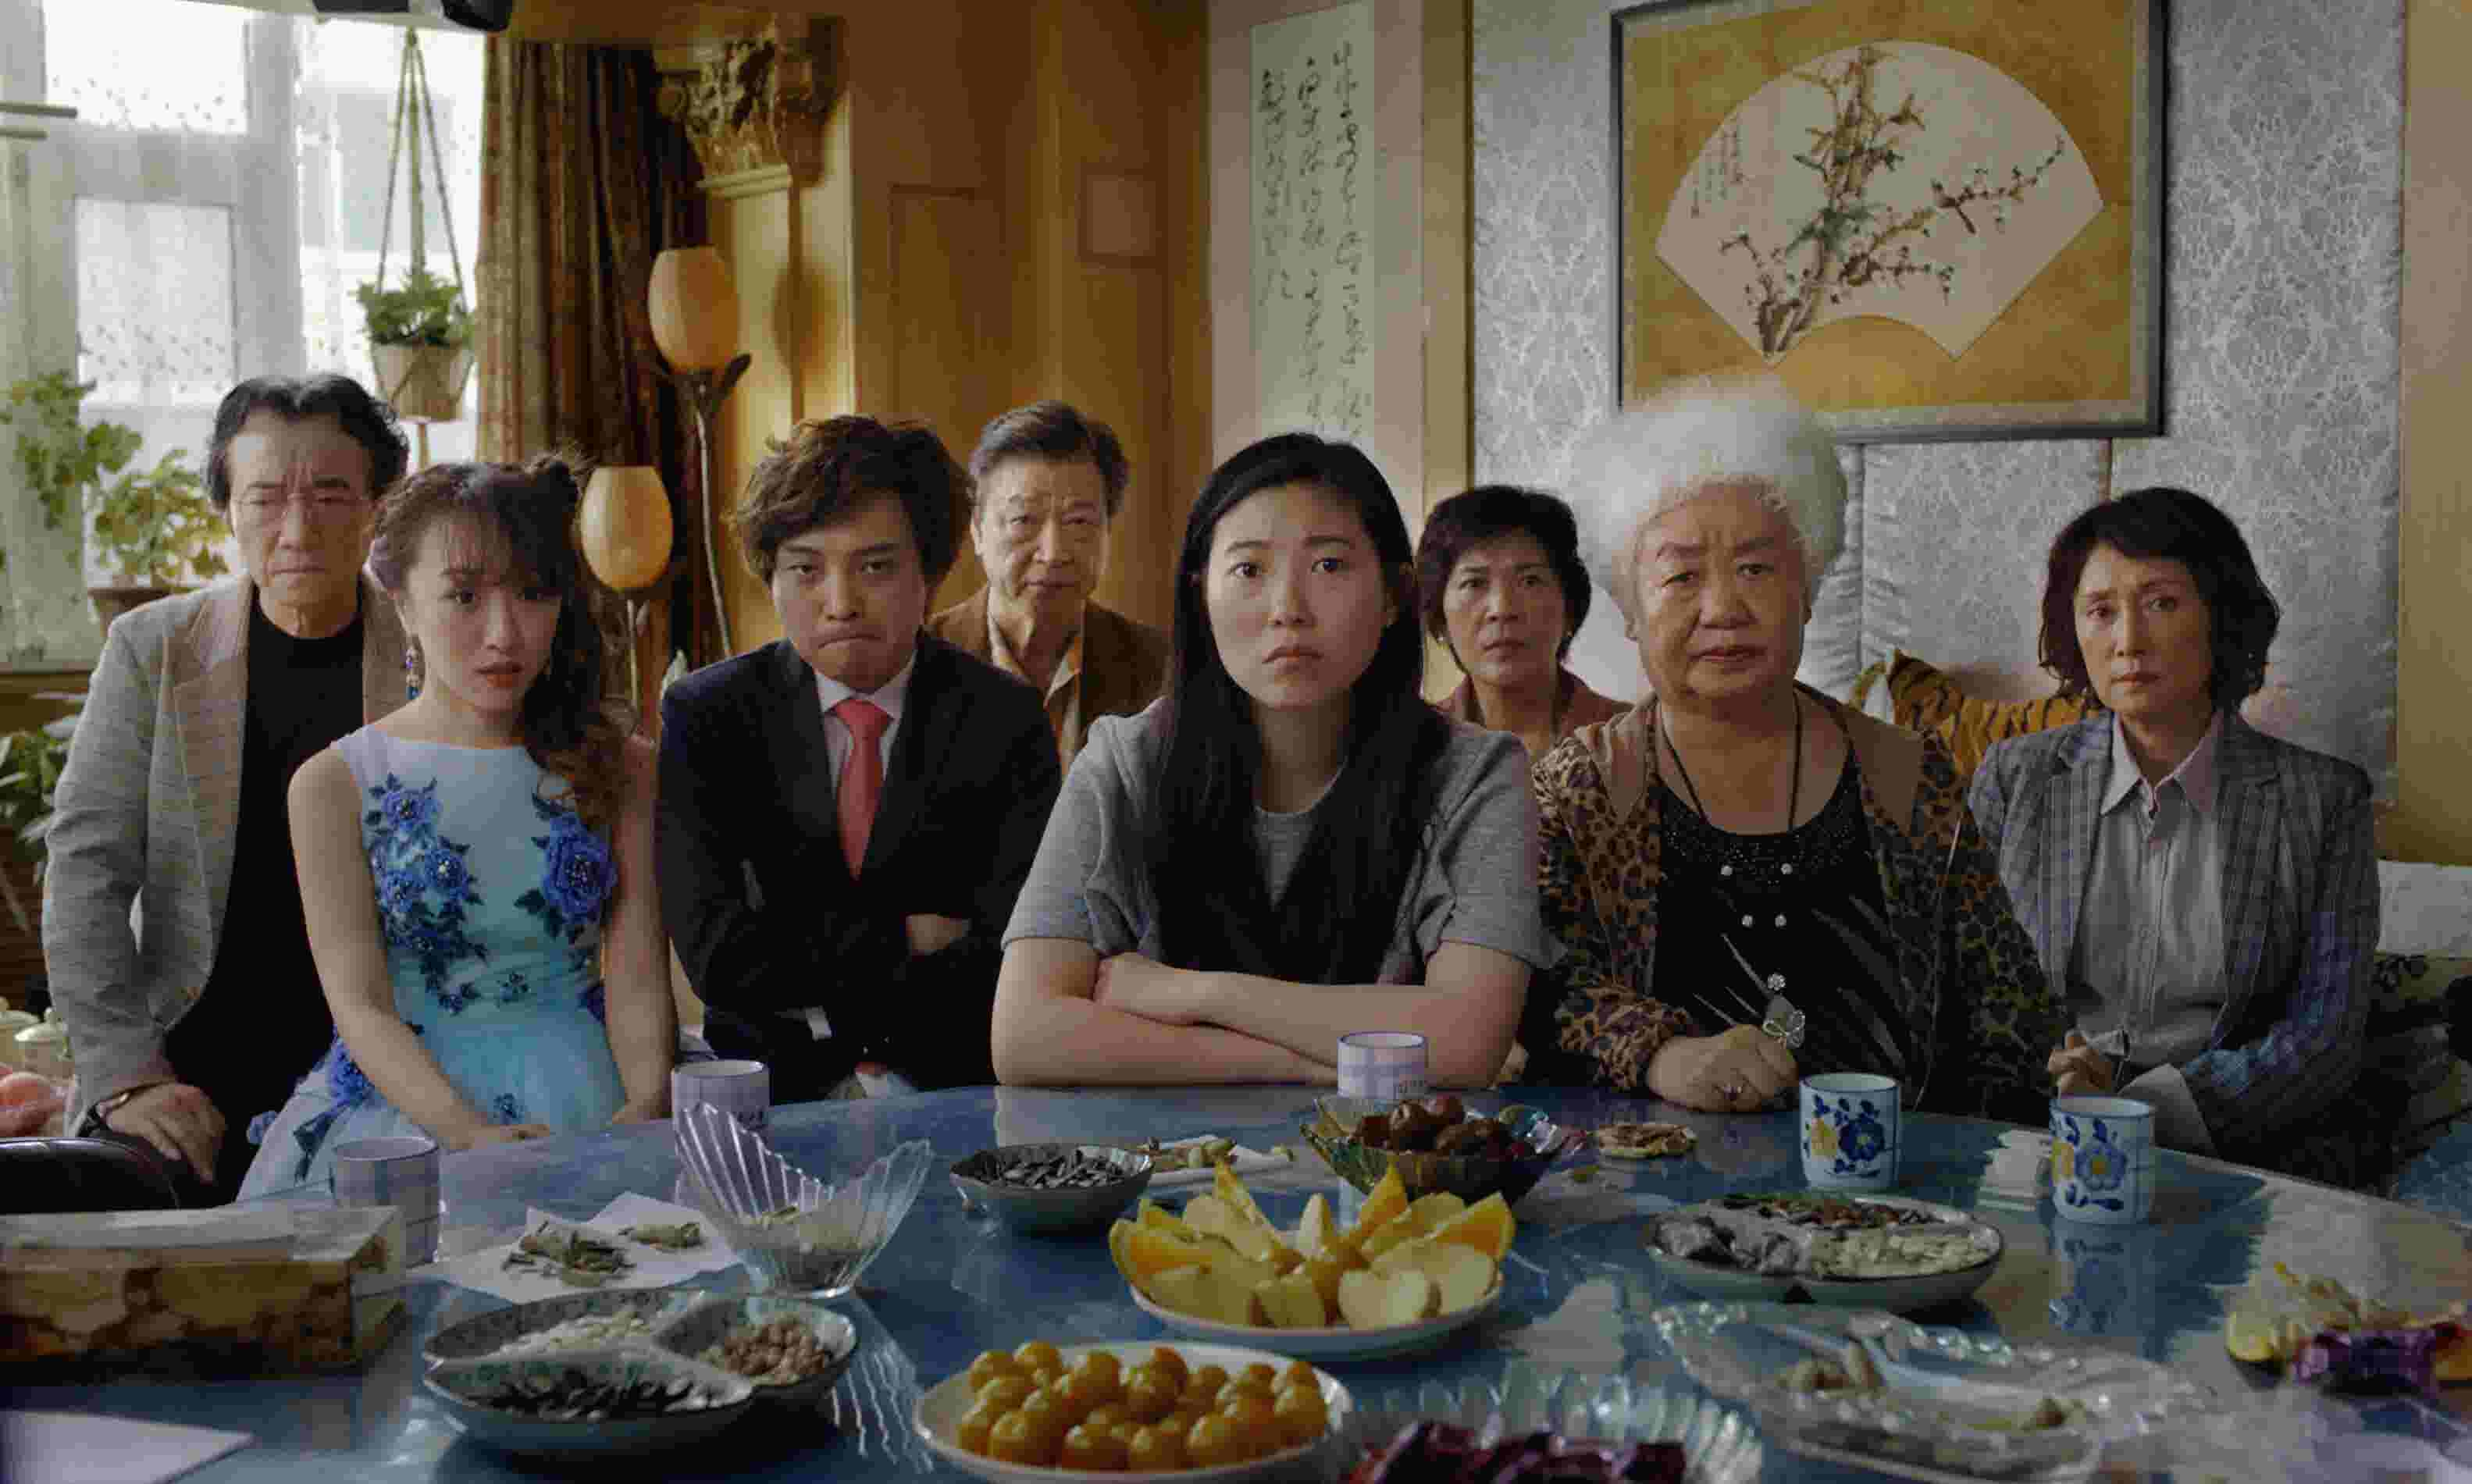 Awkwafina can't hide her emotions in first trailer for 'The Farewell'